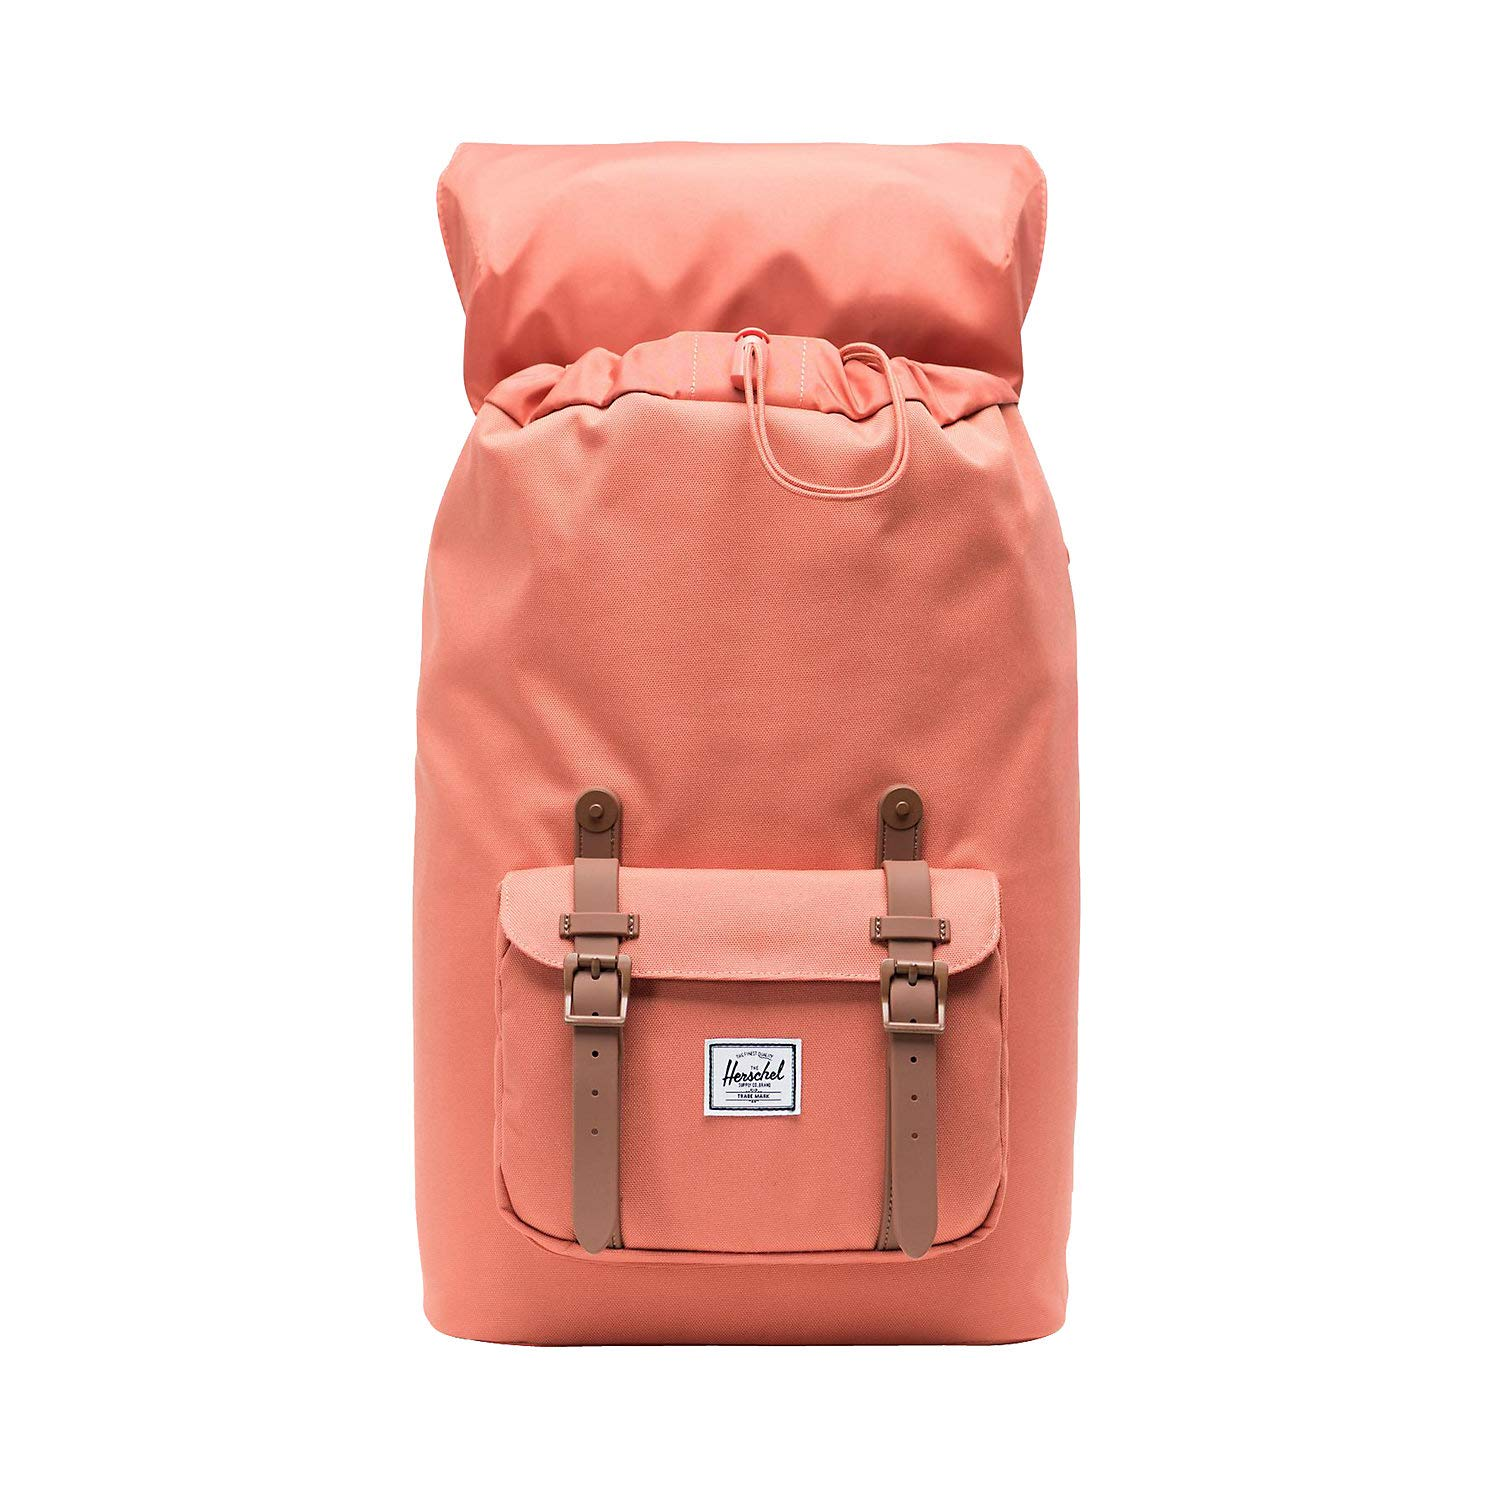 b0d5ddc5a574b Herschel Bags Collection Little America Rucksack 40 cm apricot Brandy -  Saddle Brown  Amazon.de  Koffer